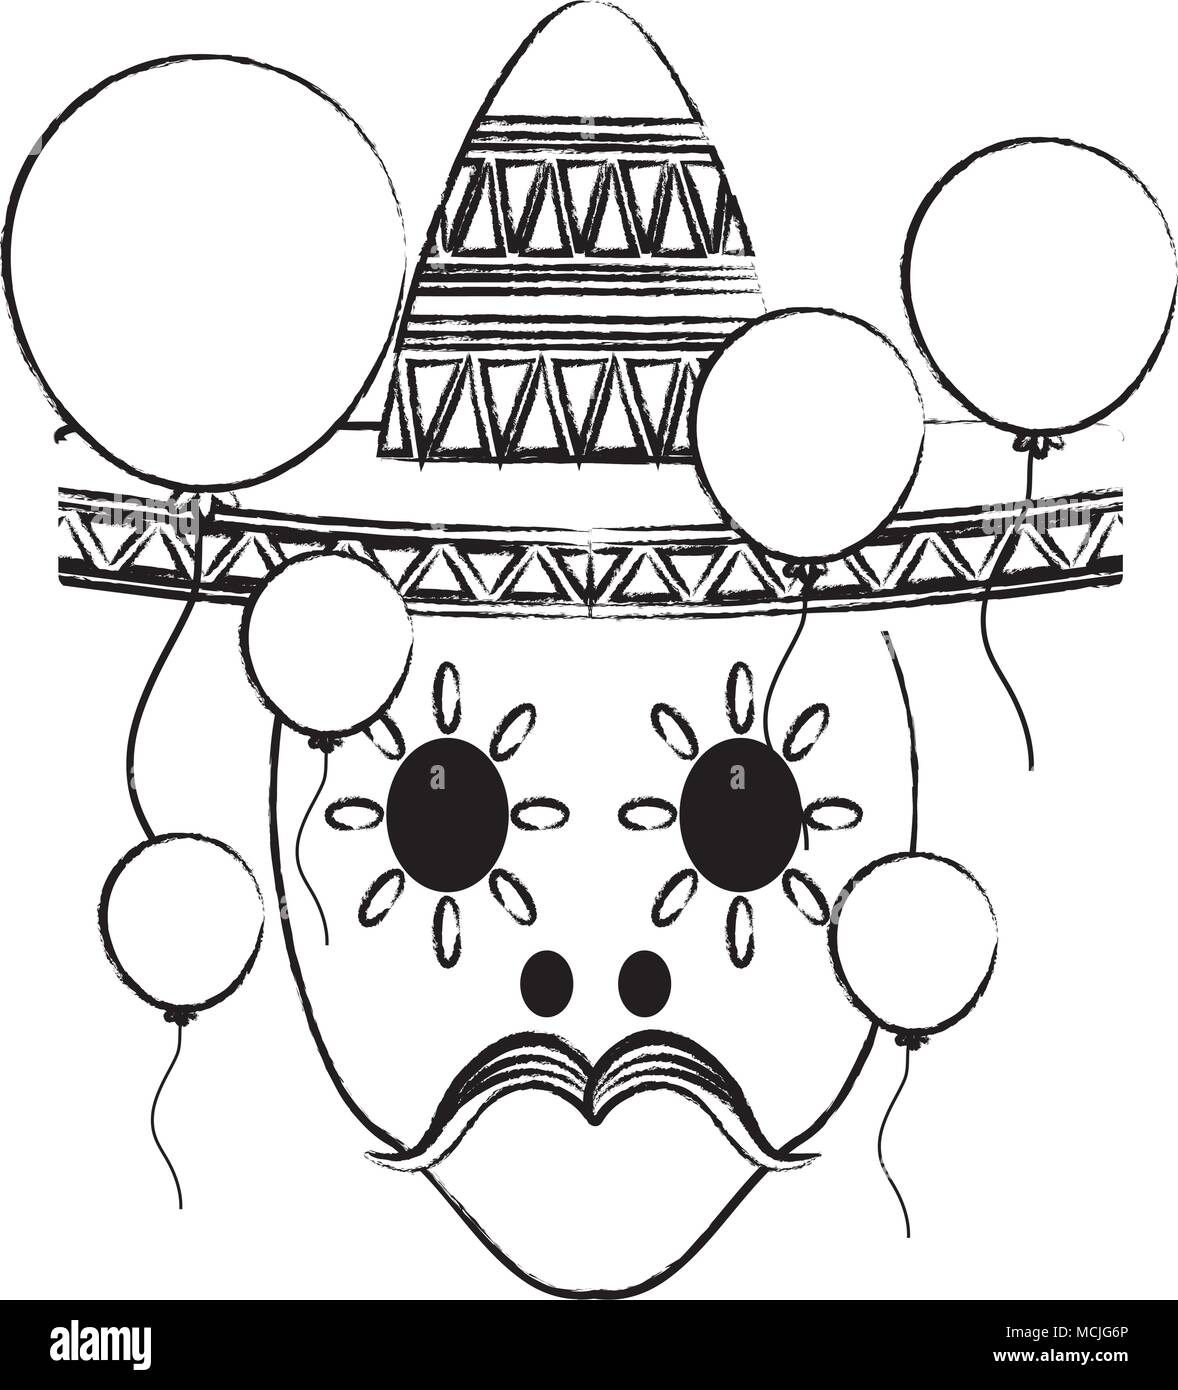 sketch of sugar skull with mexican hat and decorative balloons around over white background, vector illustration - Stock Image